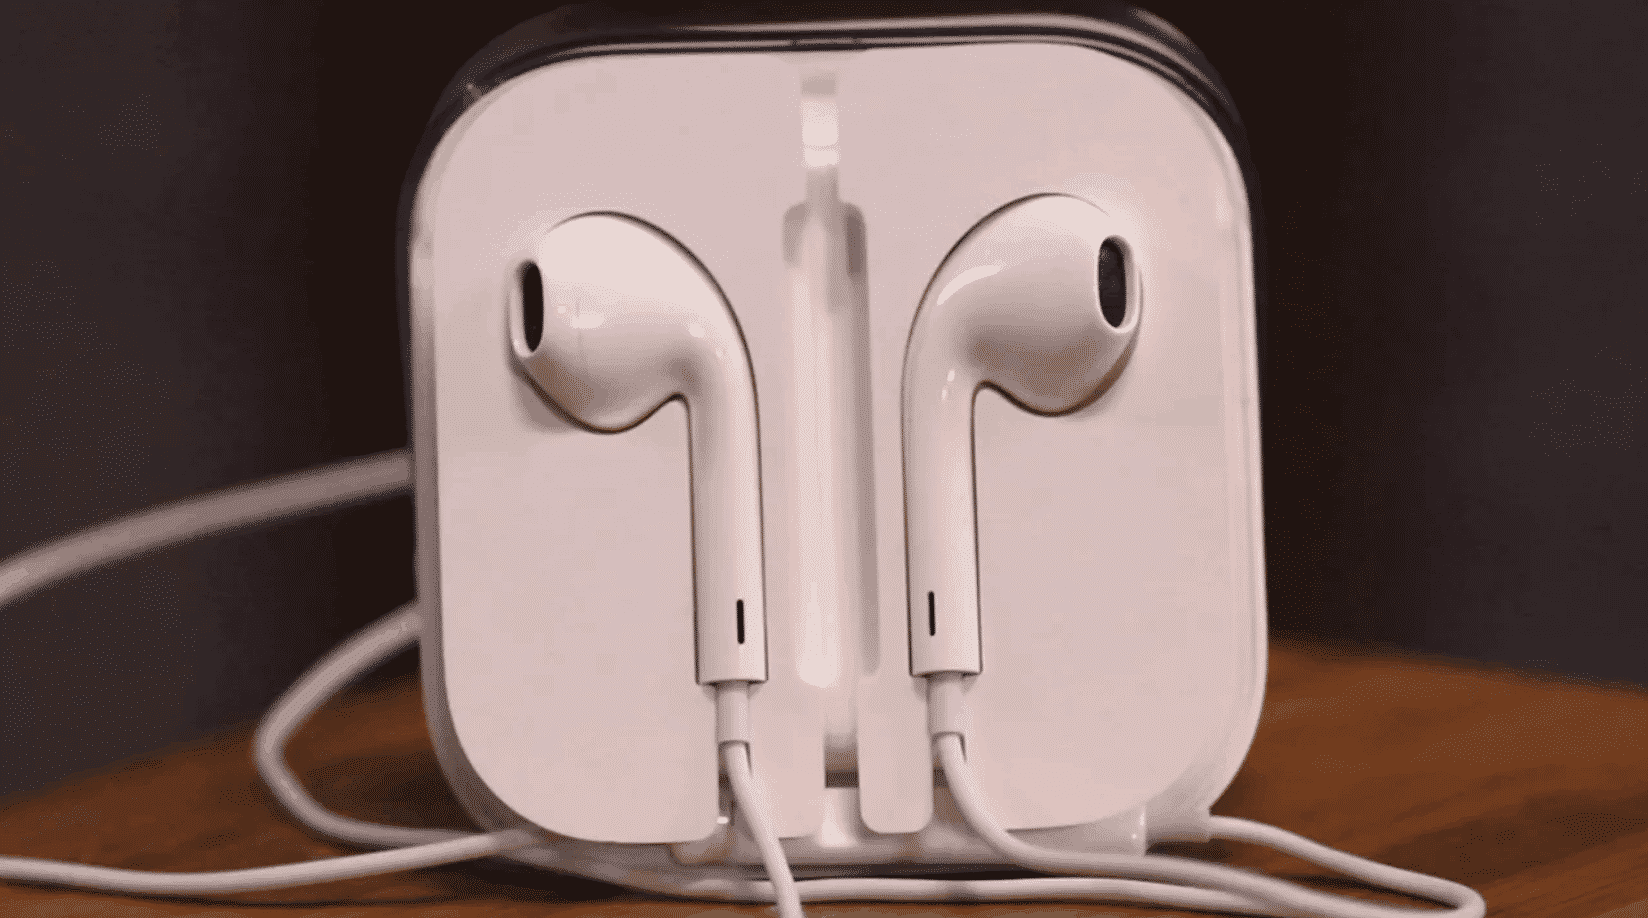 Apple EarPods and Apple Earphones